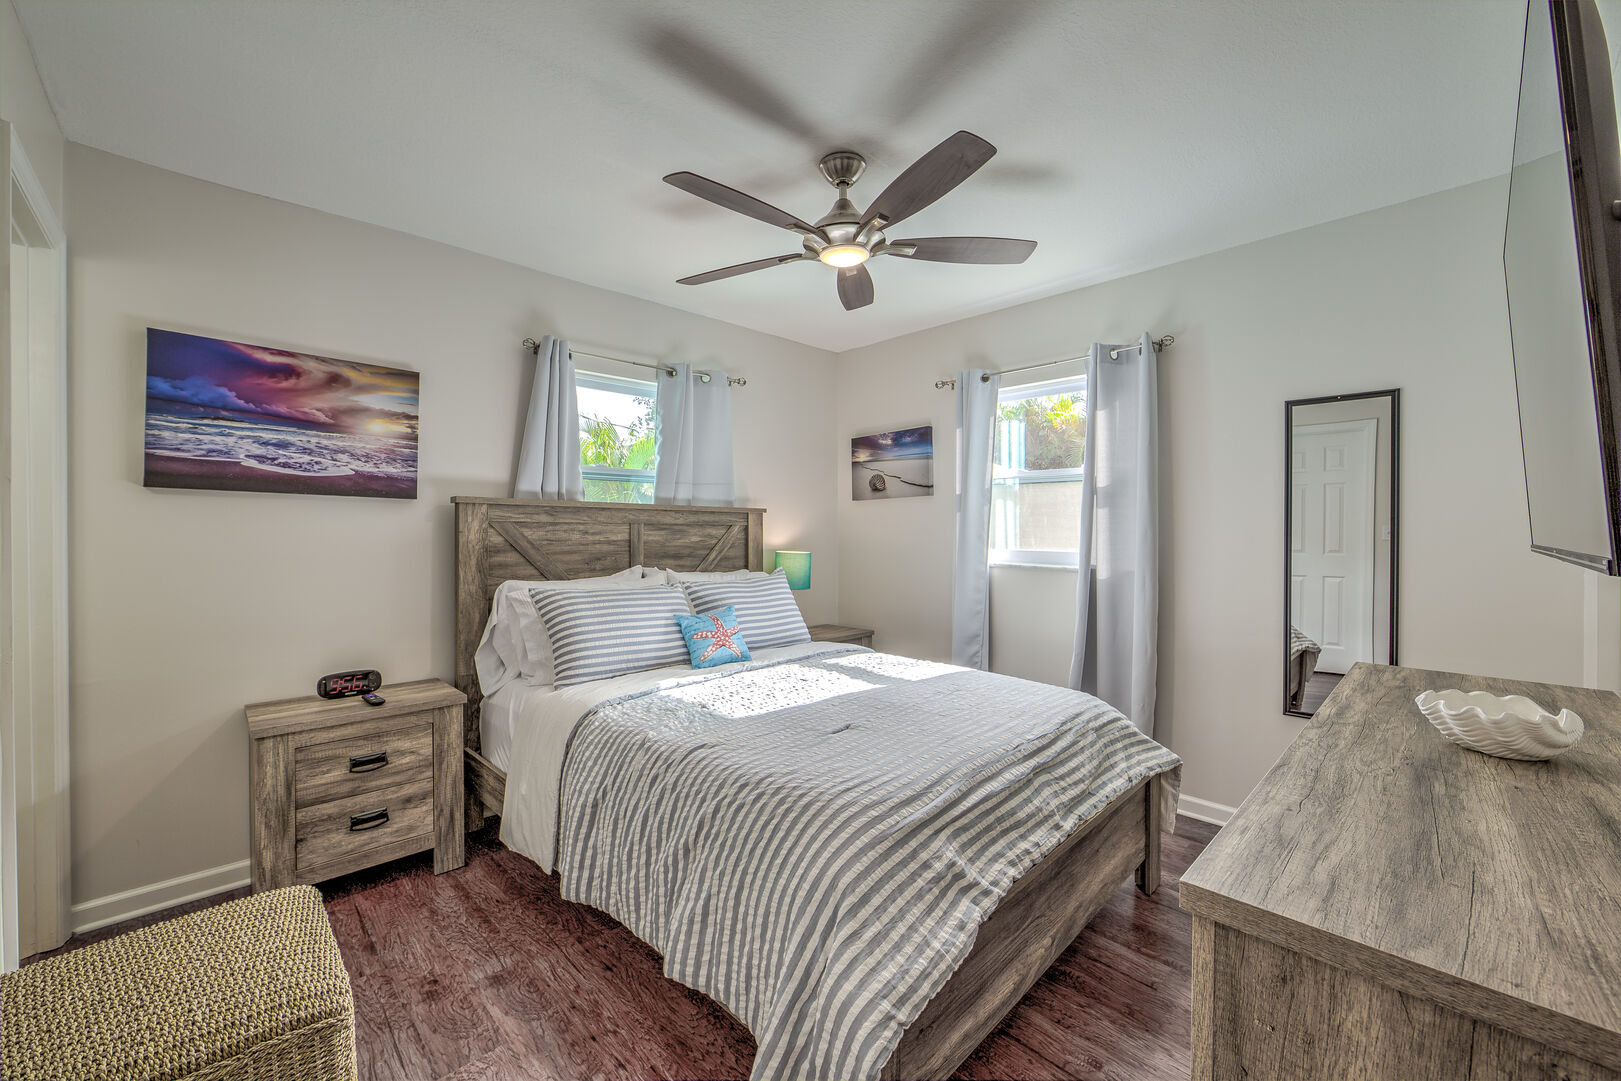 Bedroom of the Vacation Homes in Fort Myers